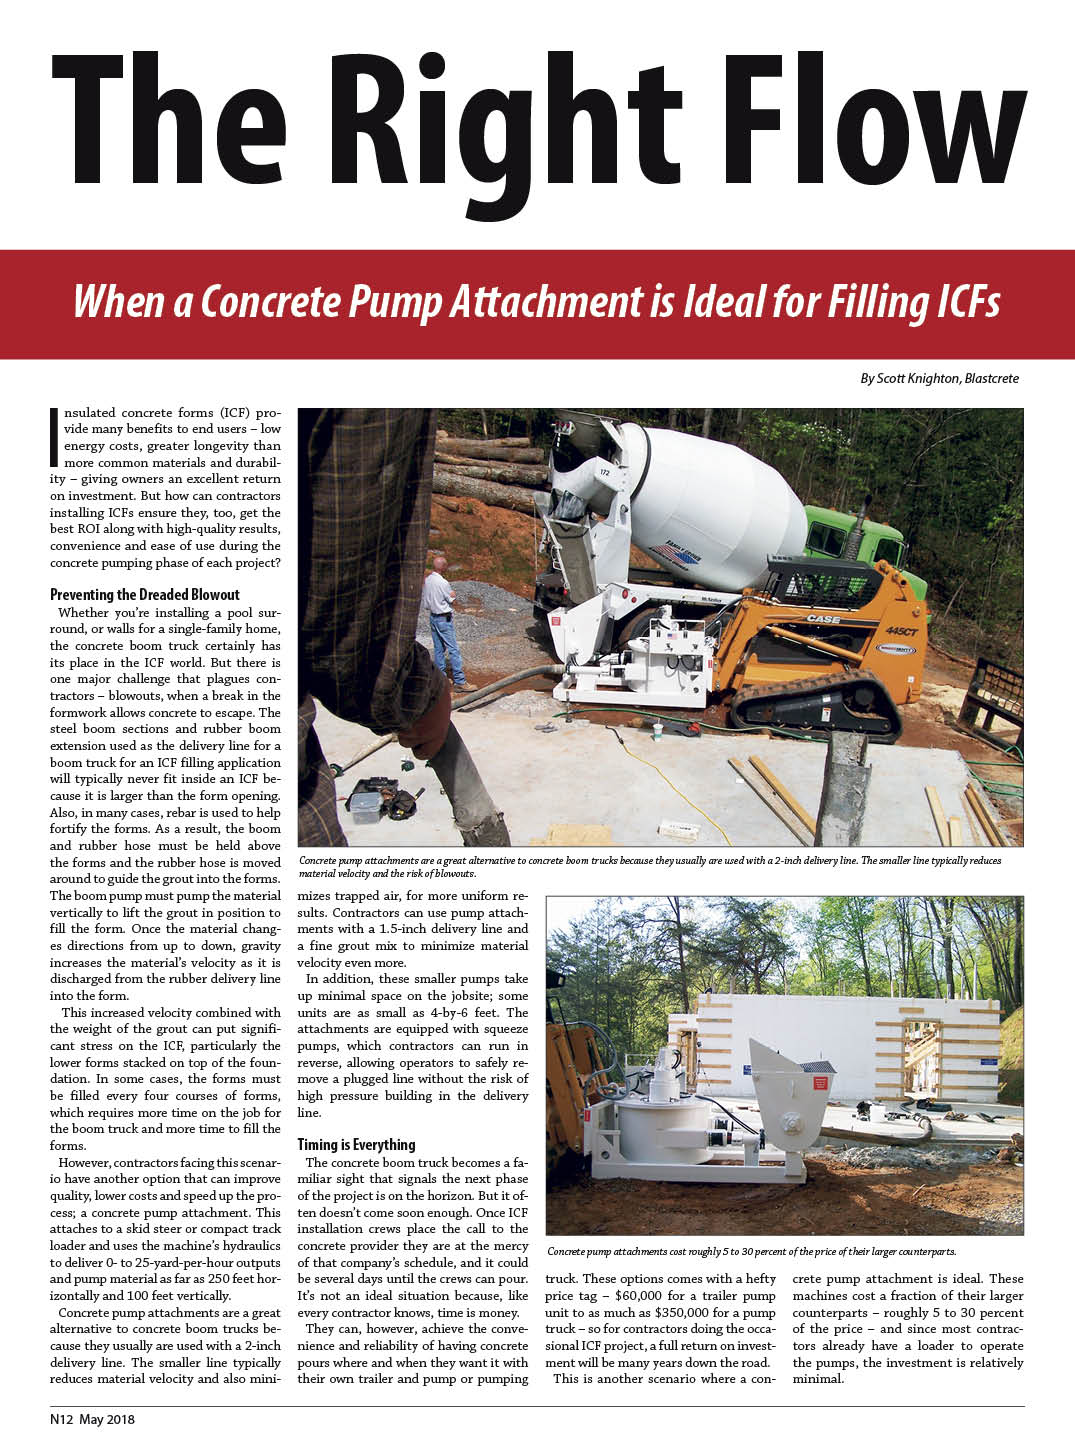 The Right Flow — When a Concrete Pump Attachment Is Ideal